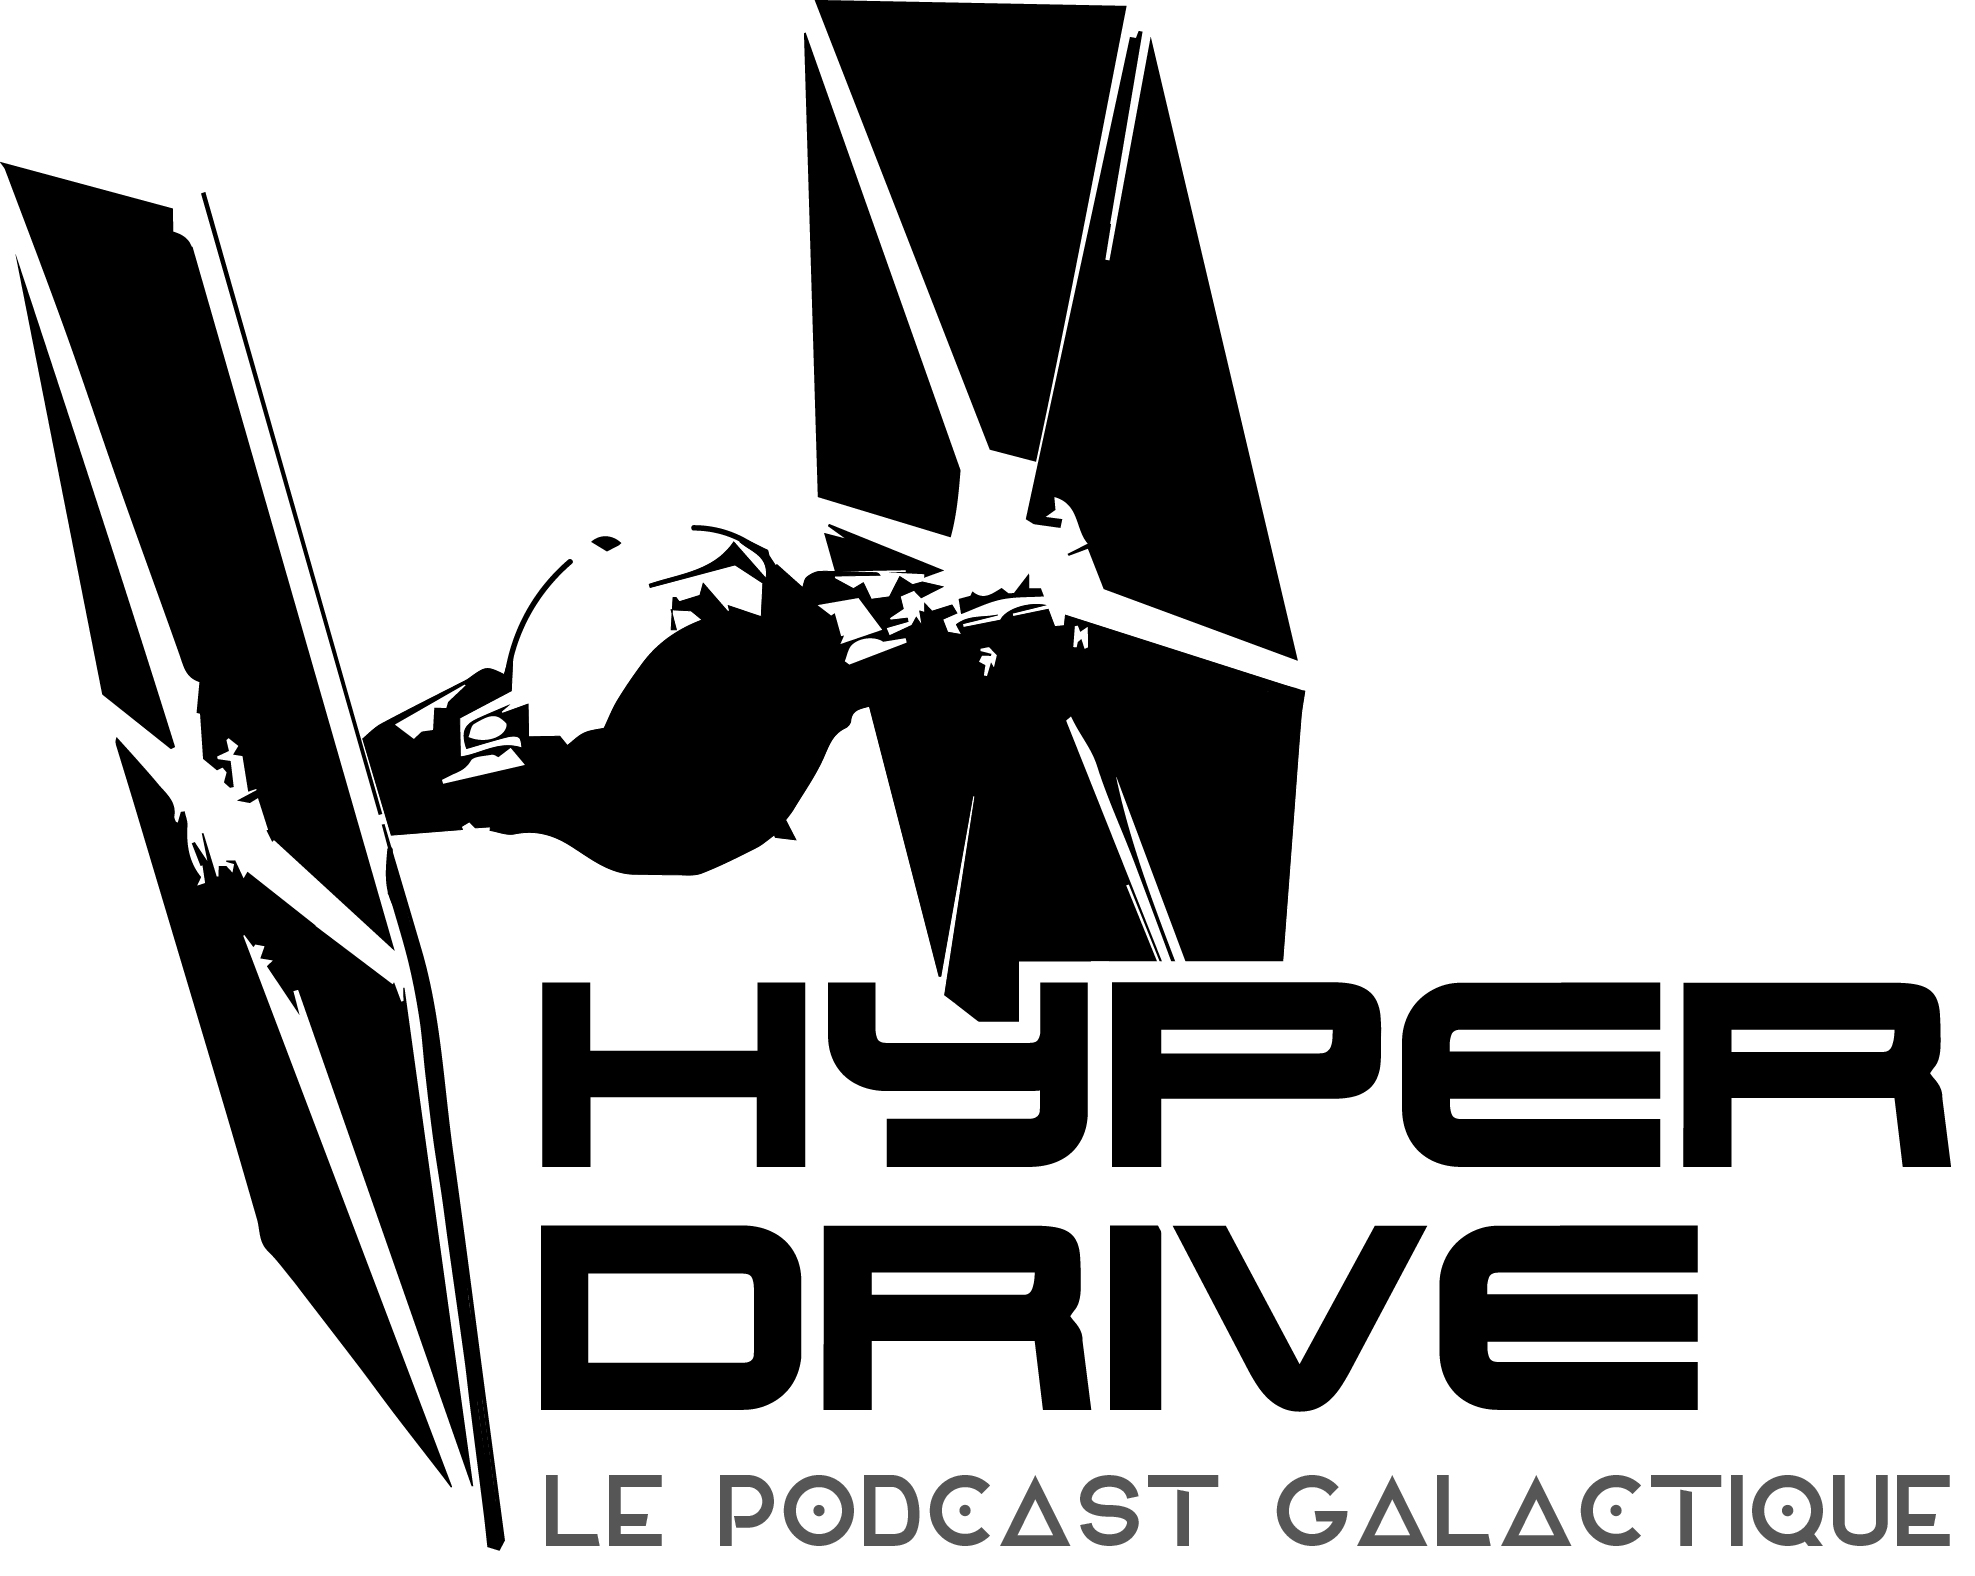 Hyperdrive podcast star wars logo